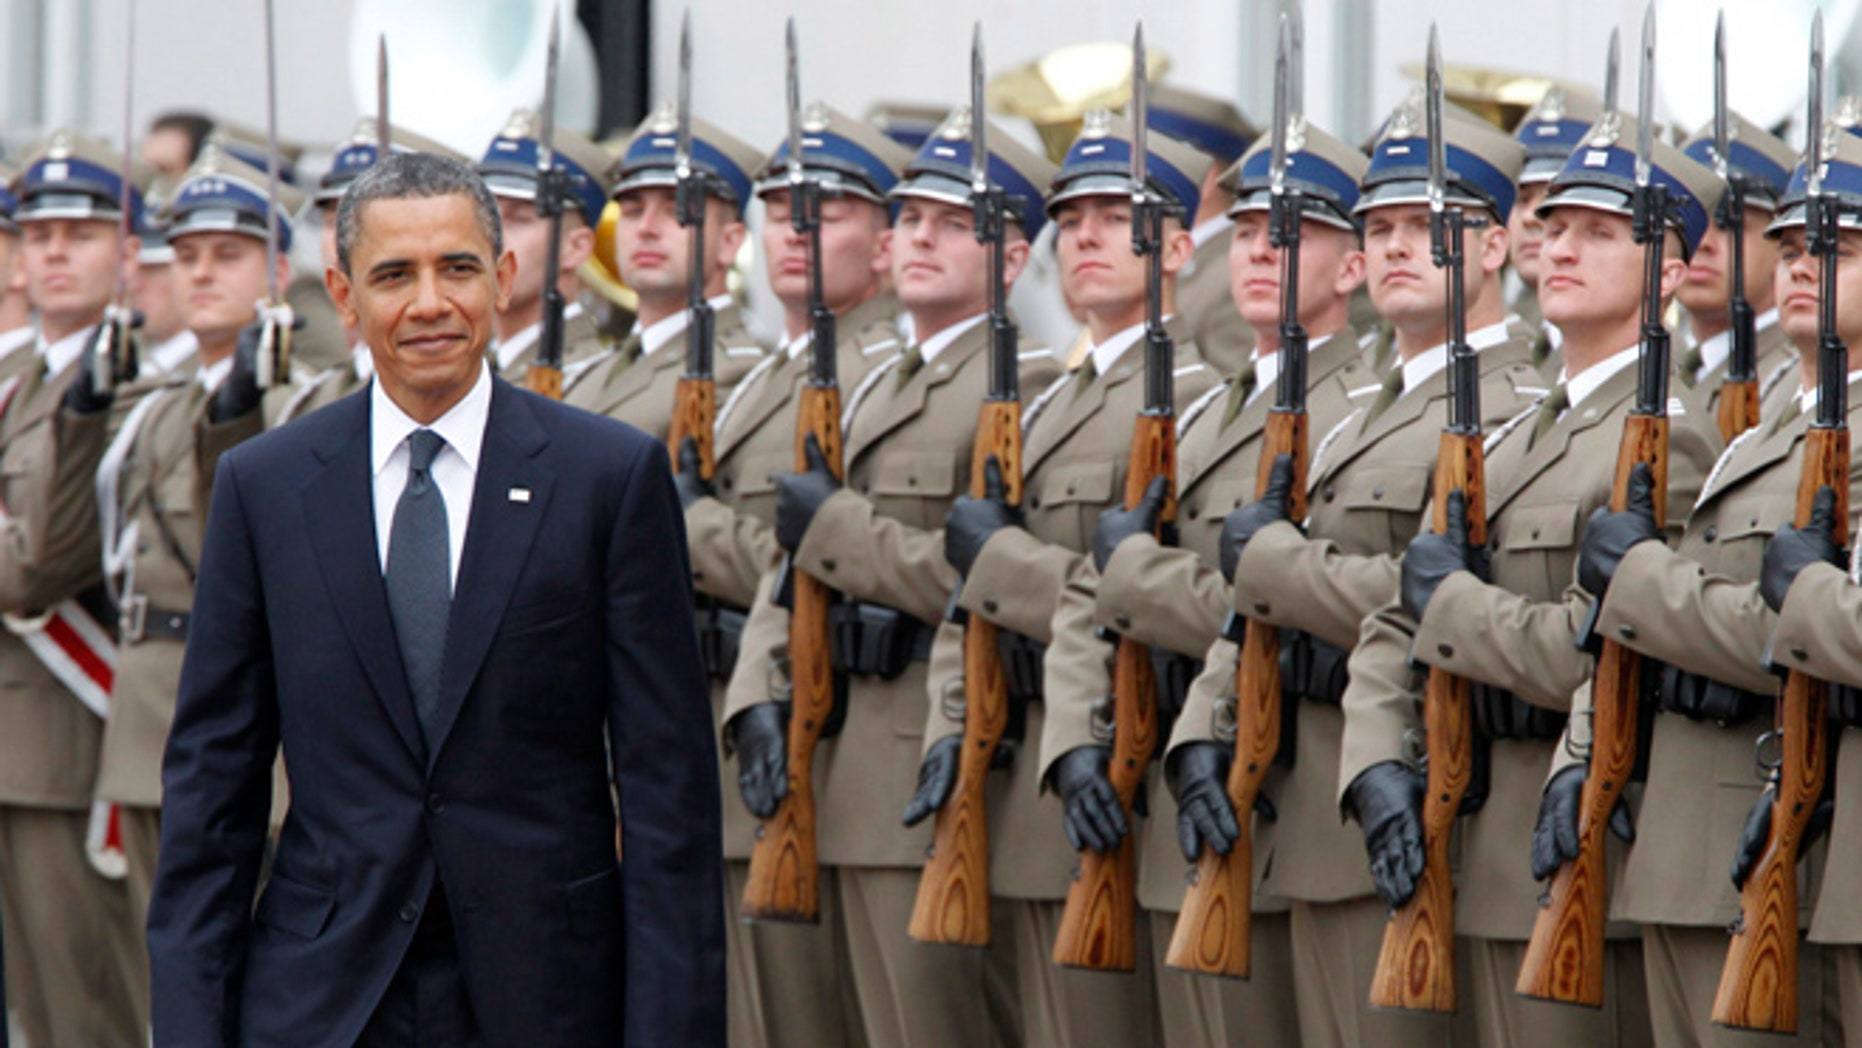 FILE: May 28, 2011: President Obama at the presidential palace in Warsaw, Poland.